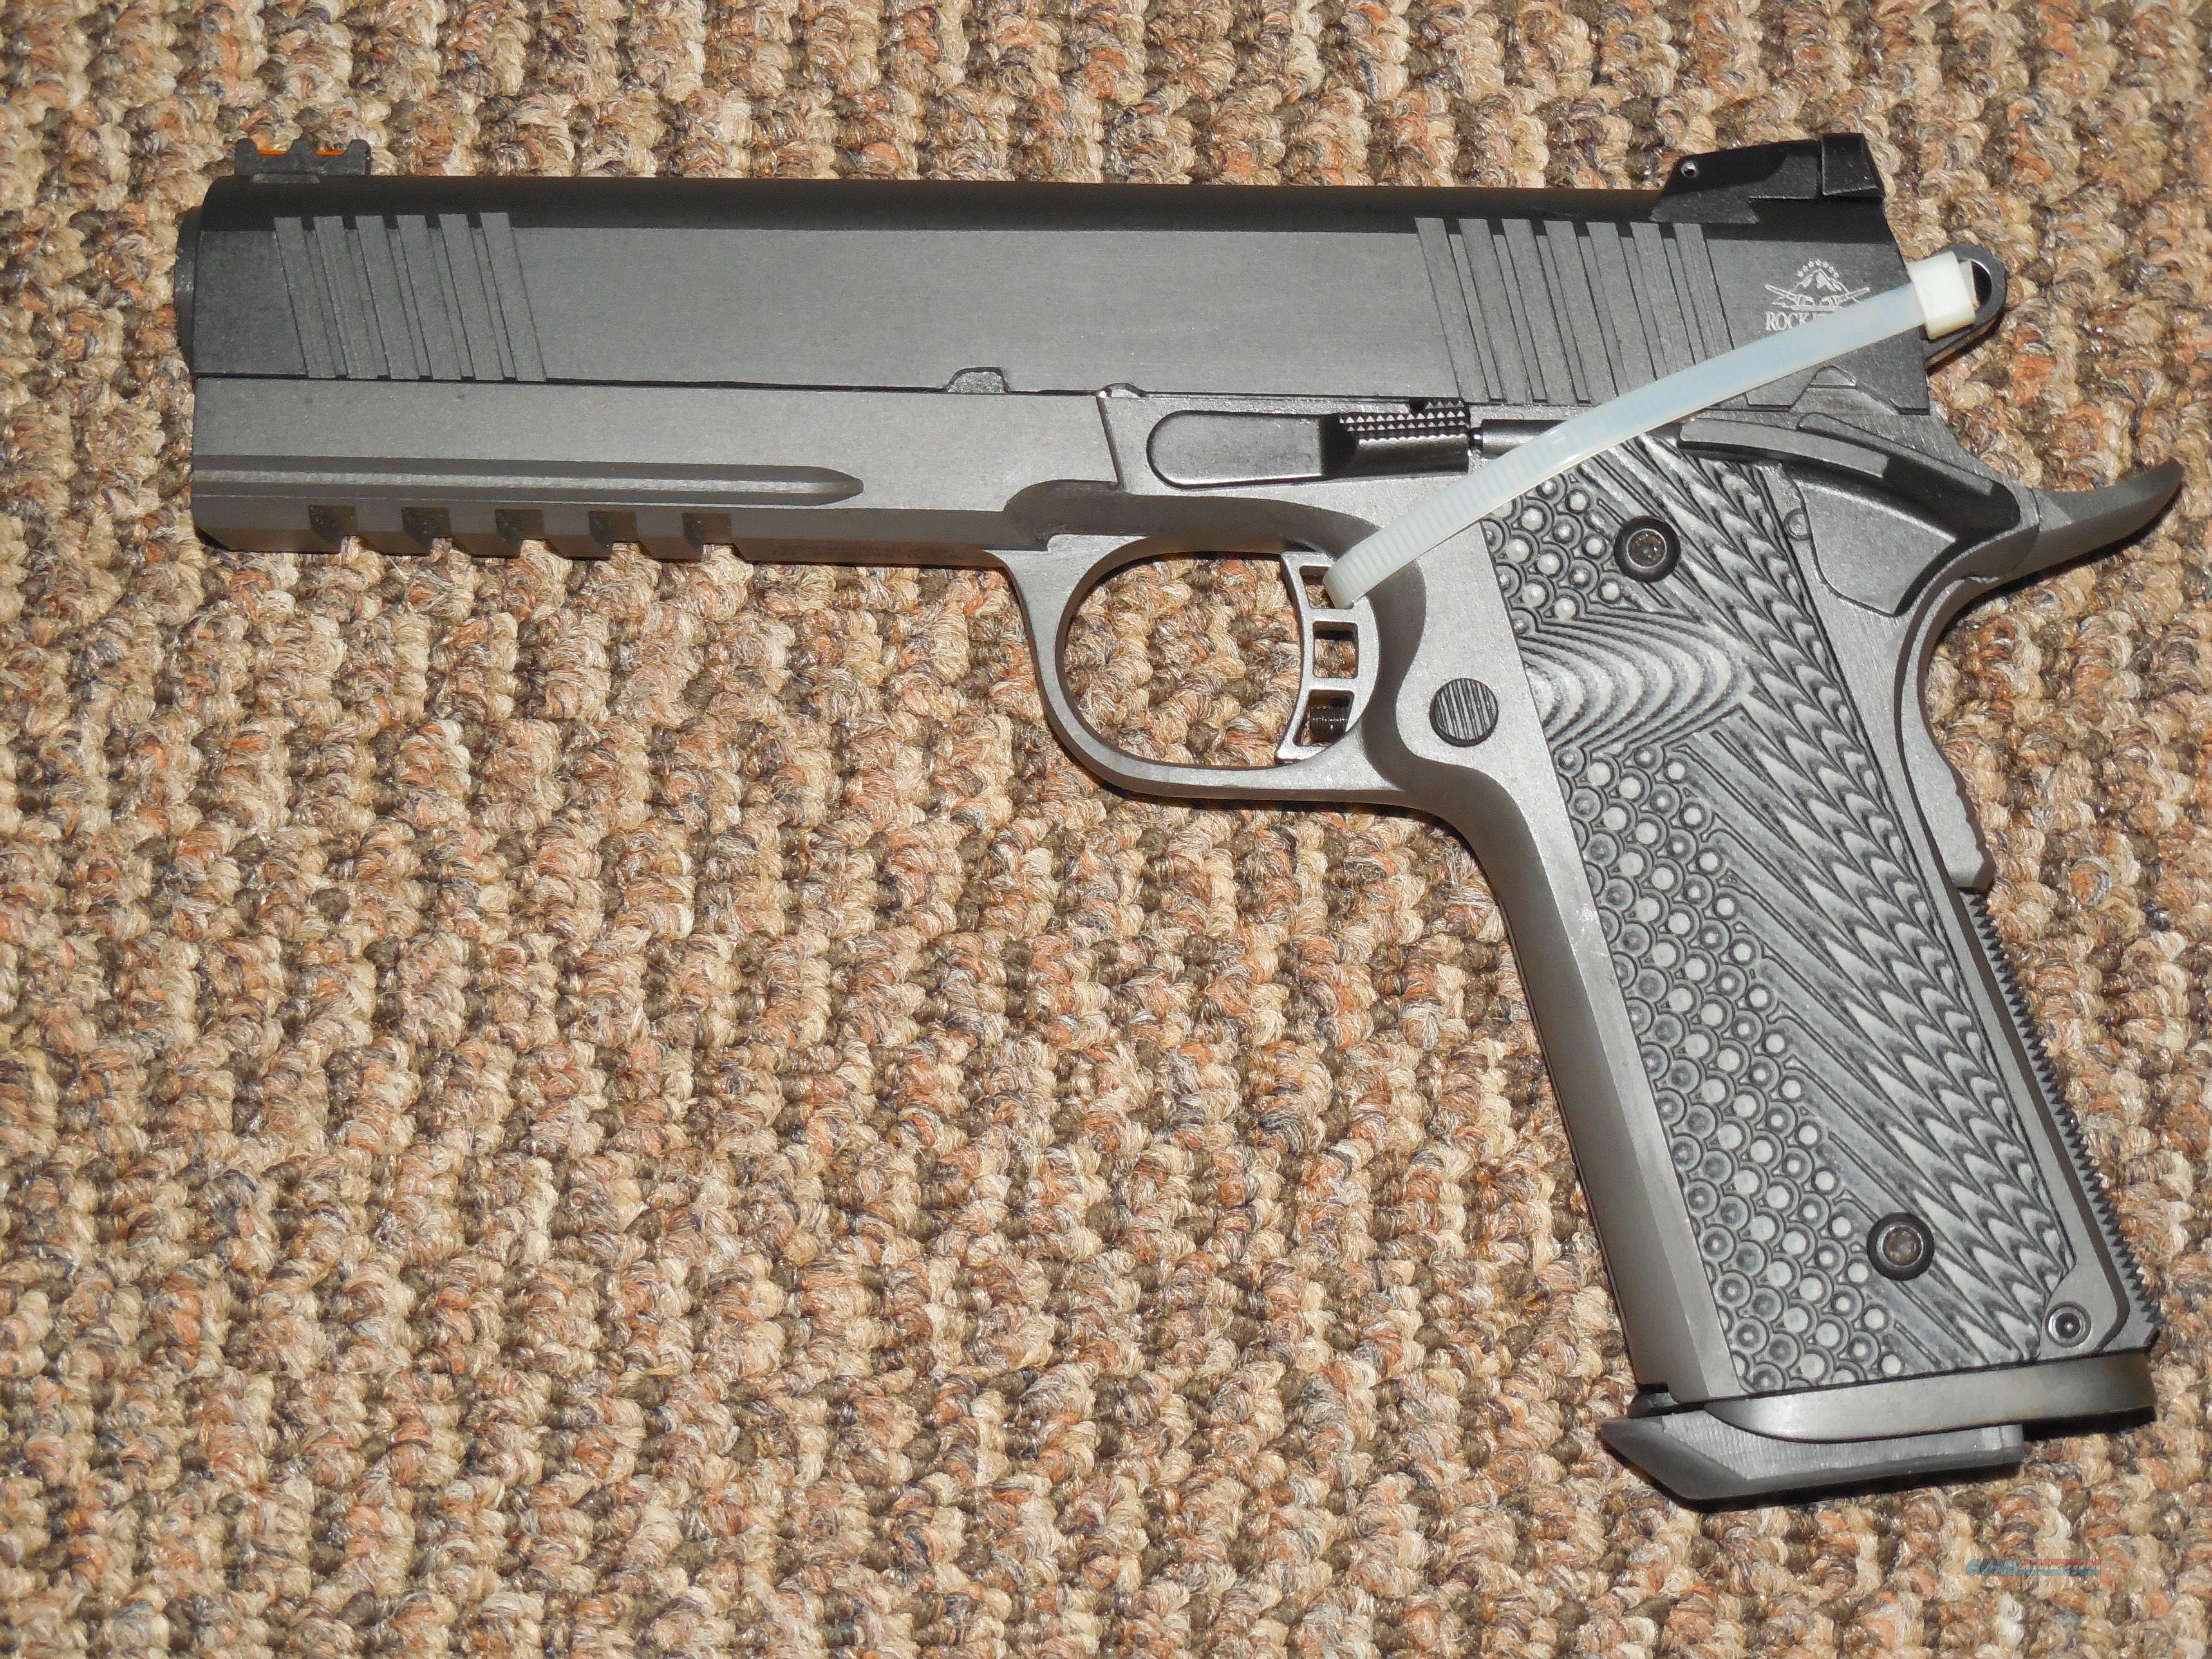 ROCK ISLAND ARMORY TACTICAL 1911 PISTOL IN 10 MM!!!!  Guns > Pistols > 1911 Pistol Copies (non-Colt)